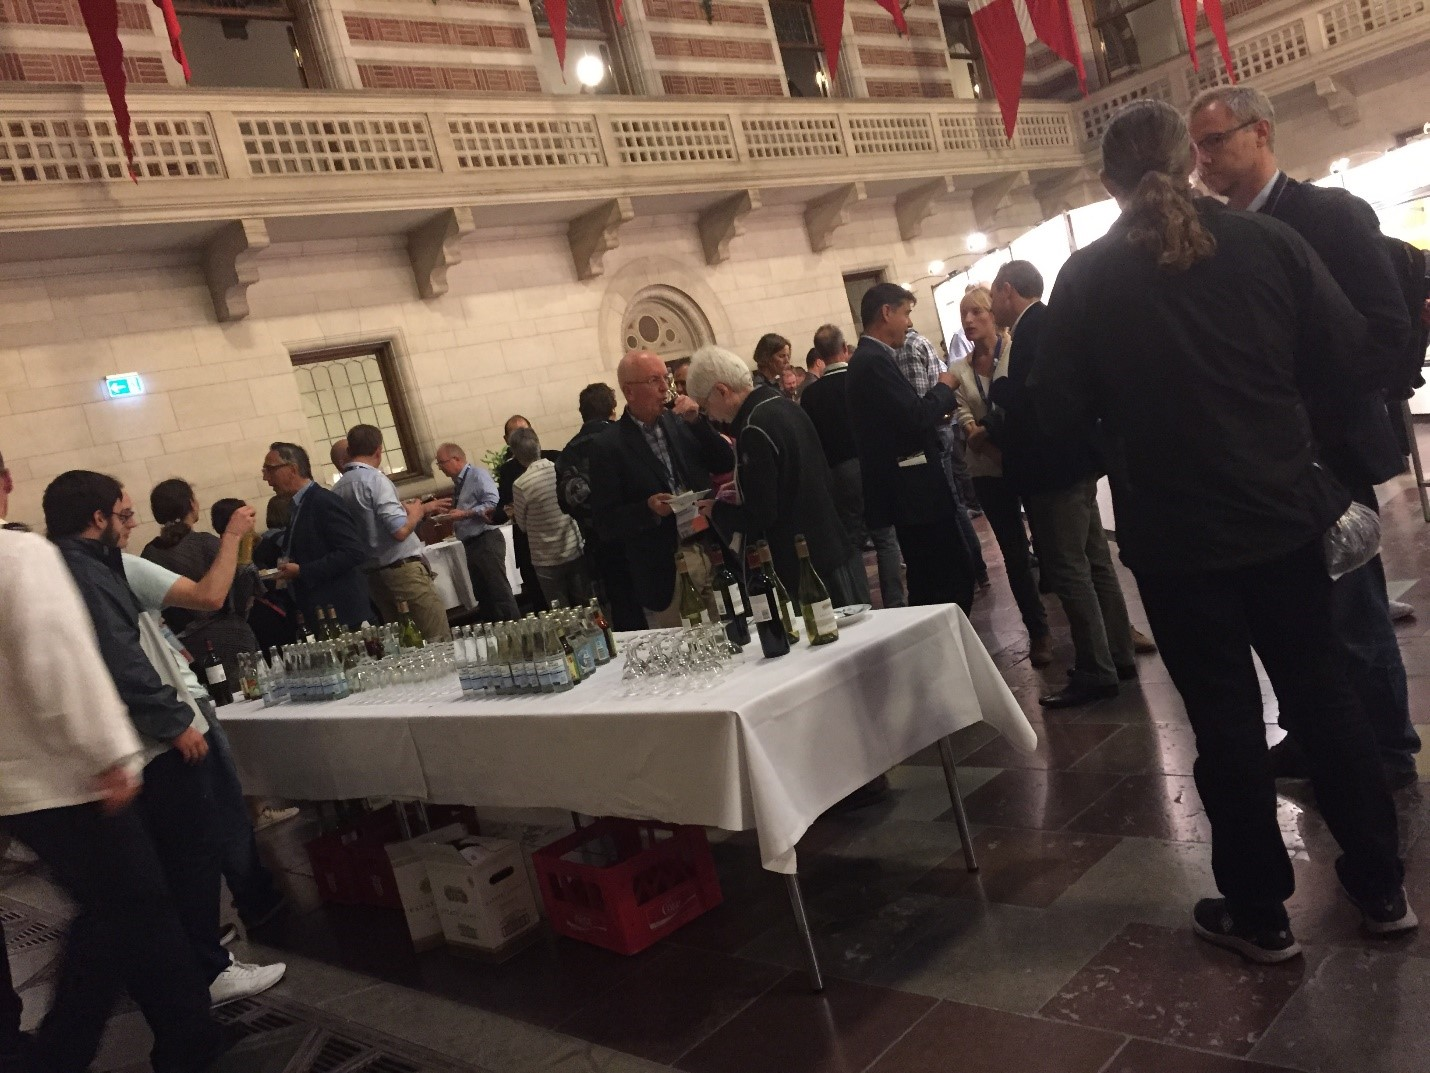 Social Event at Copenhagen City Hall